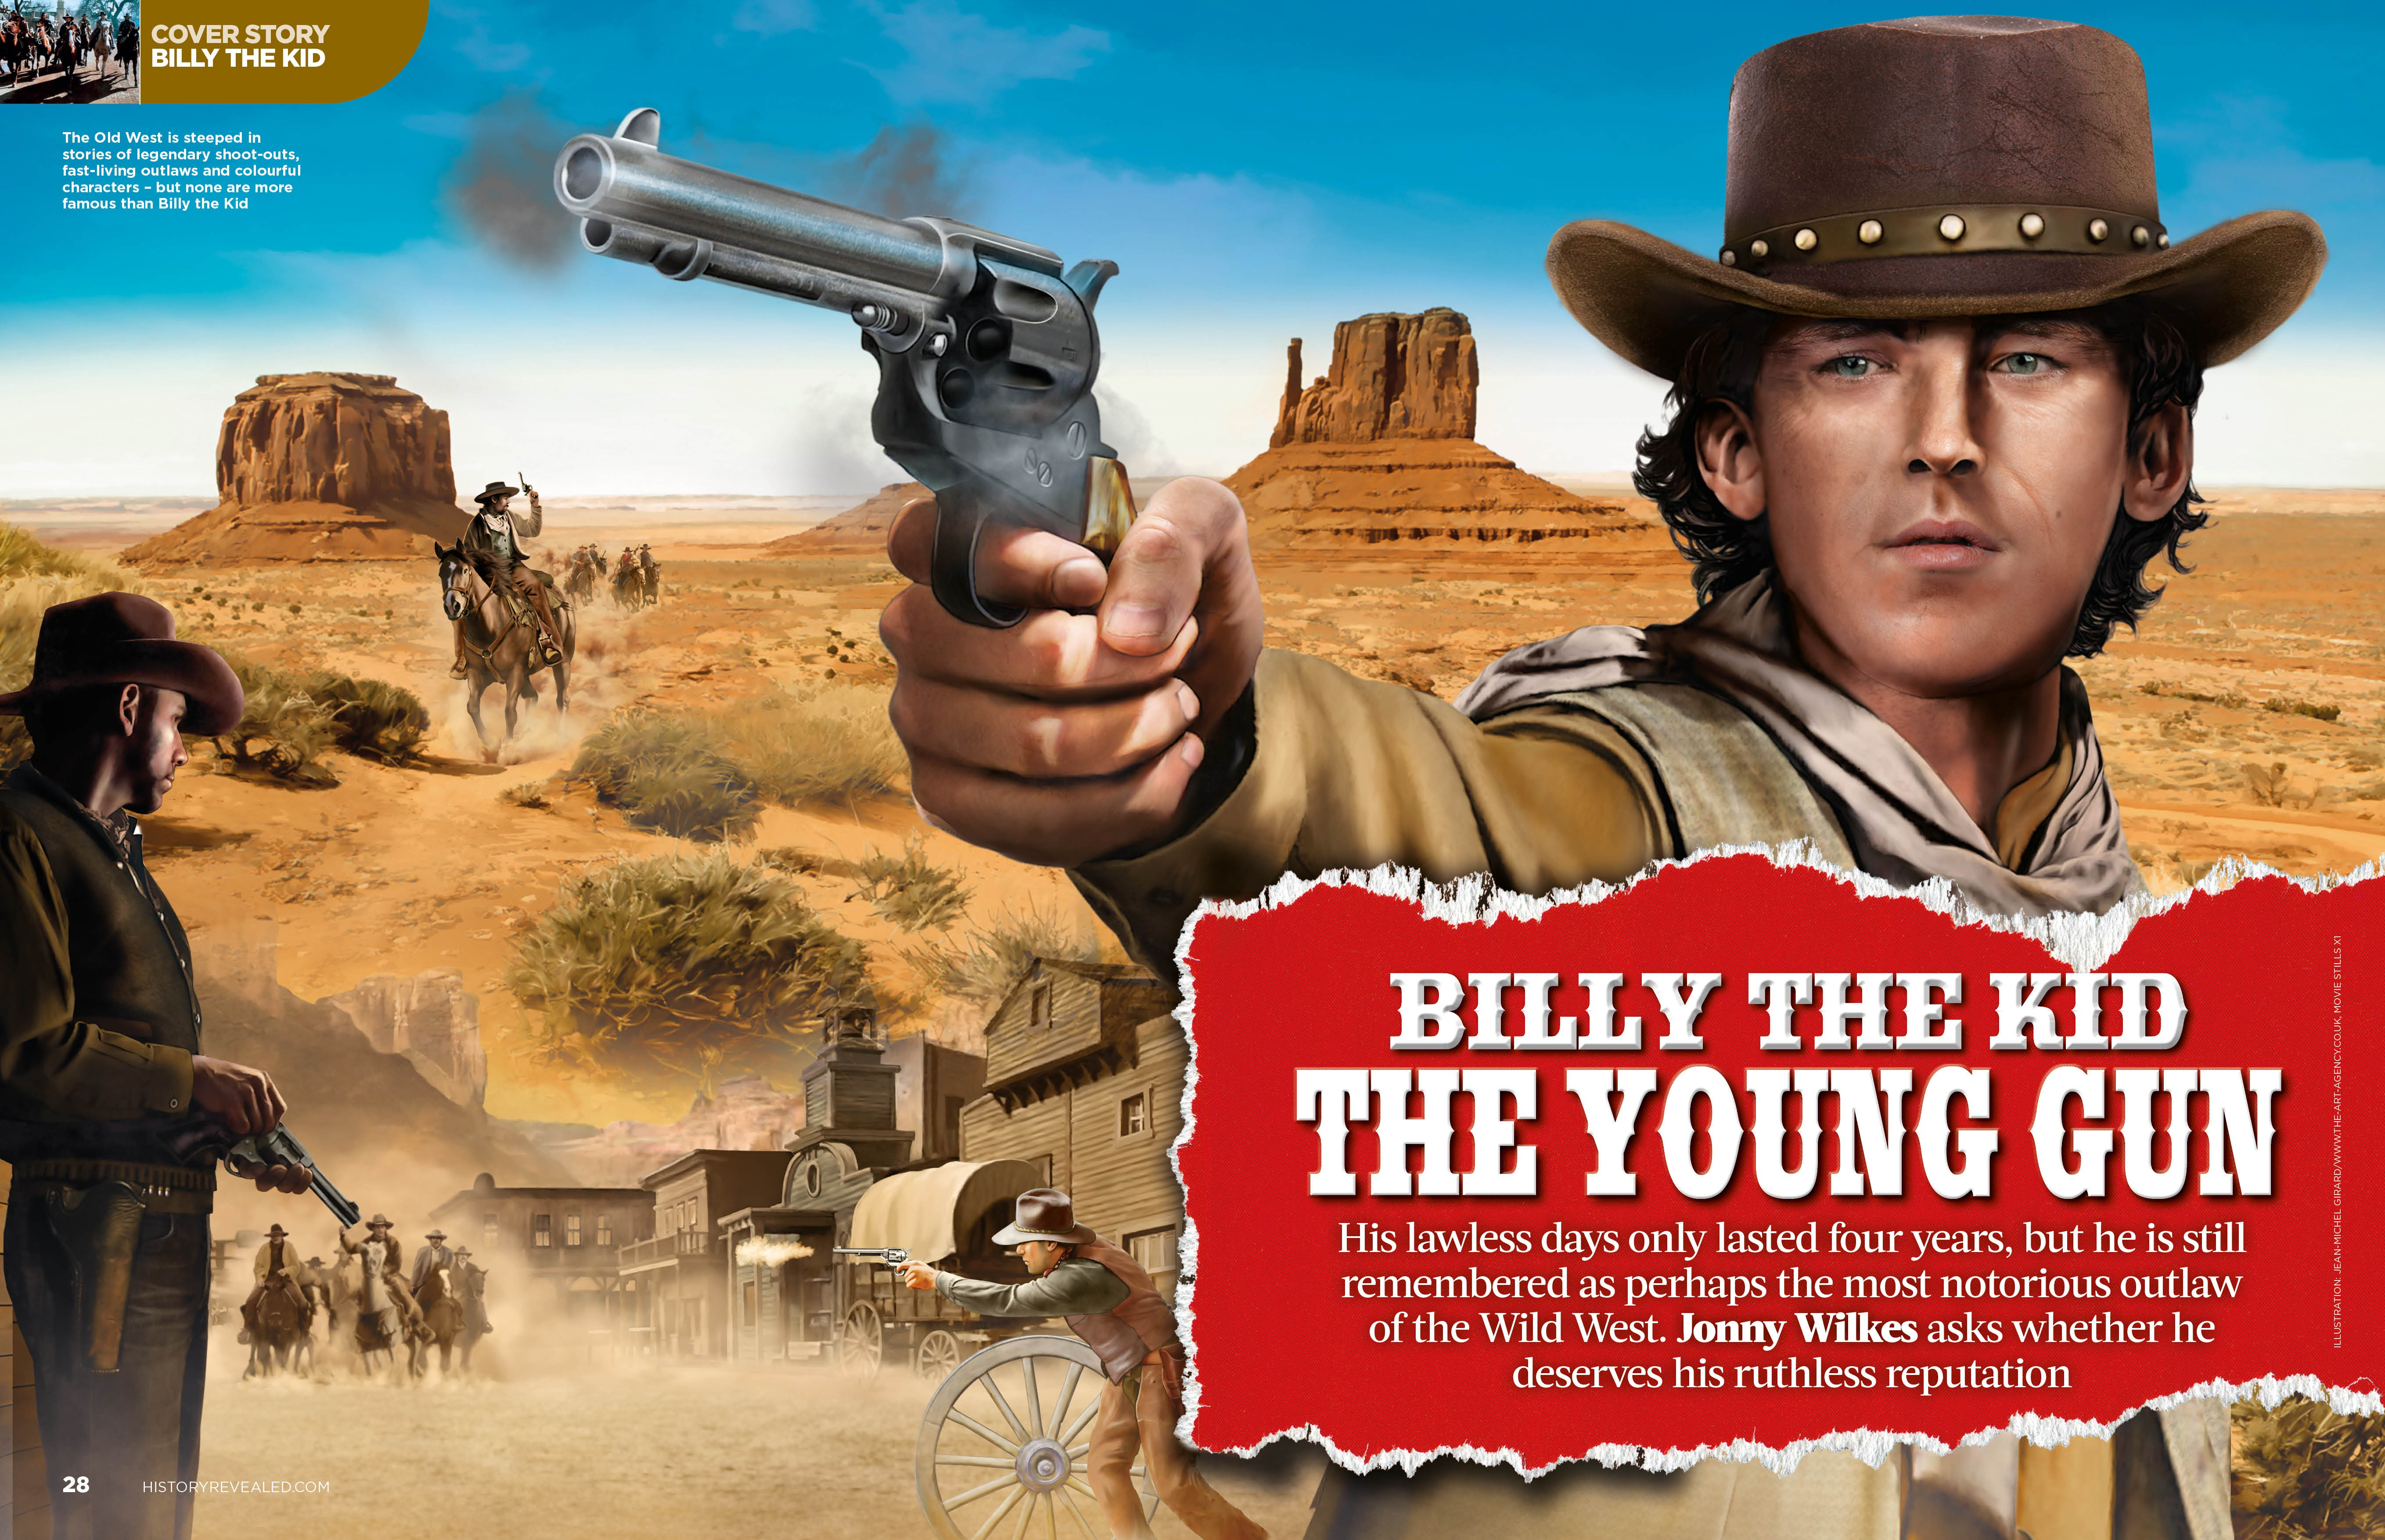 Billy the Kid - The Wild West's Most Wanted Gunslinger